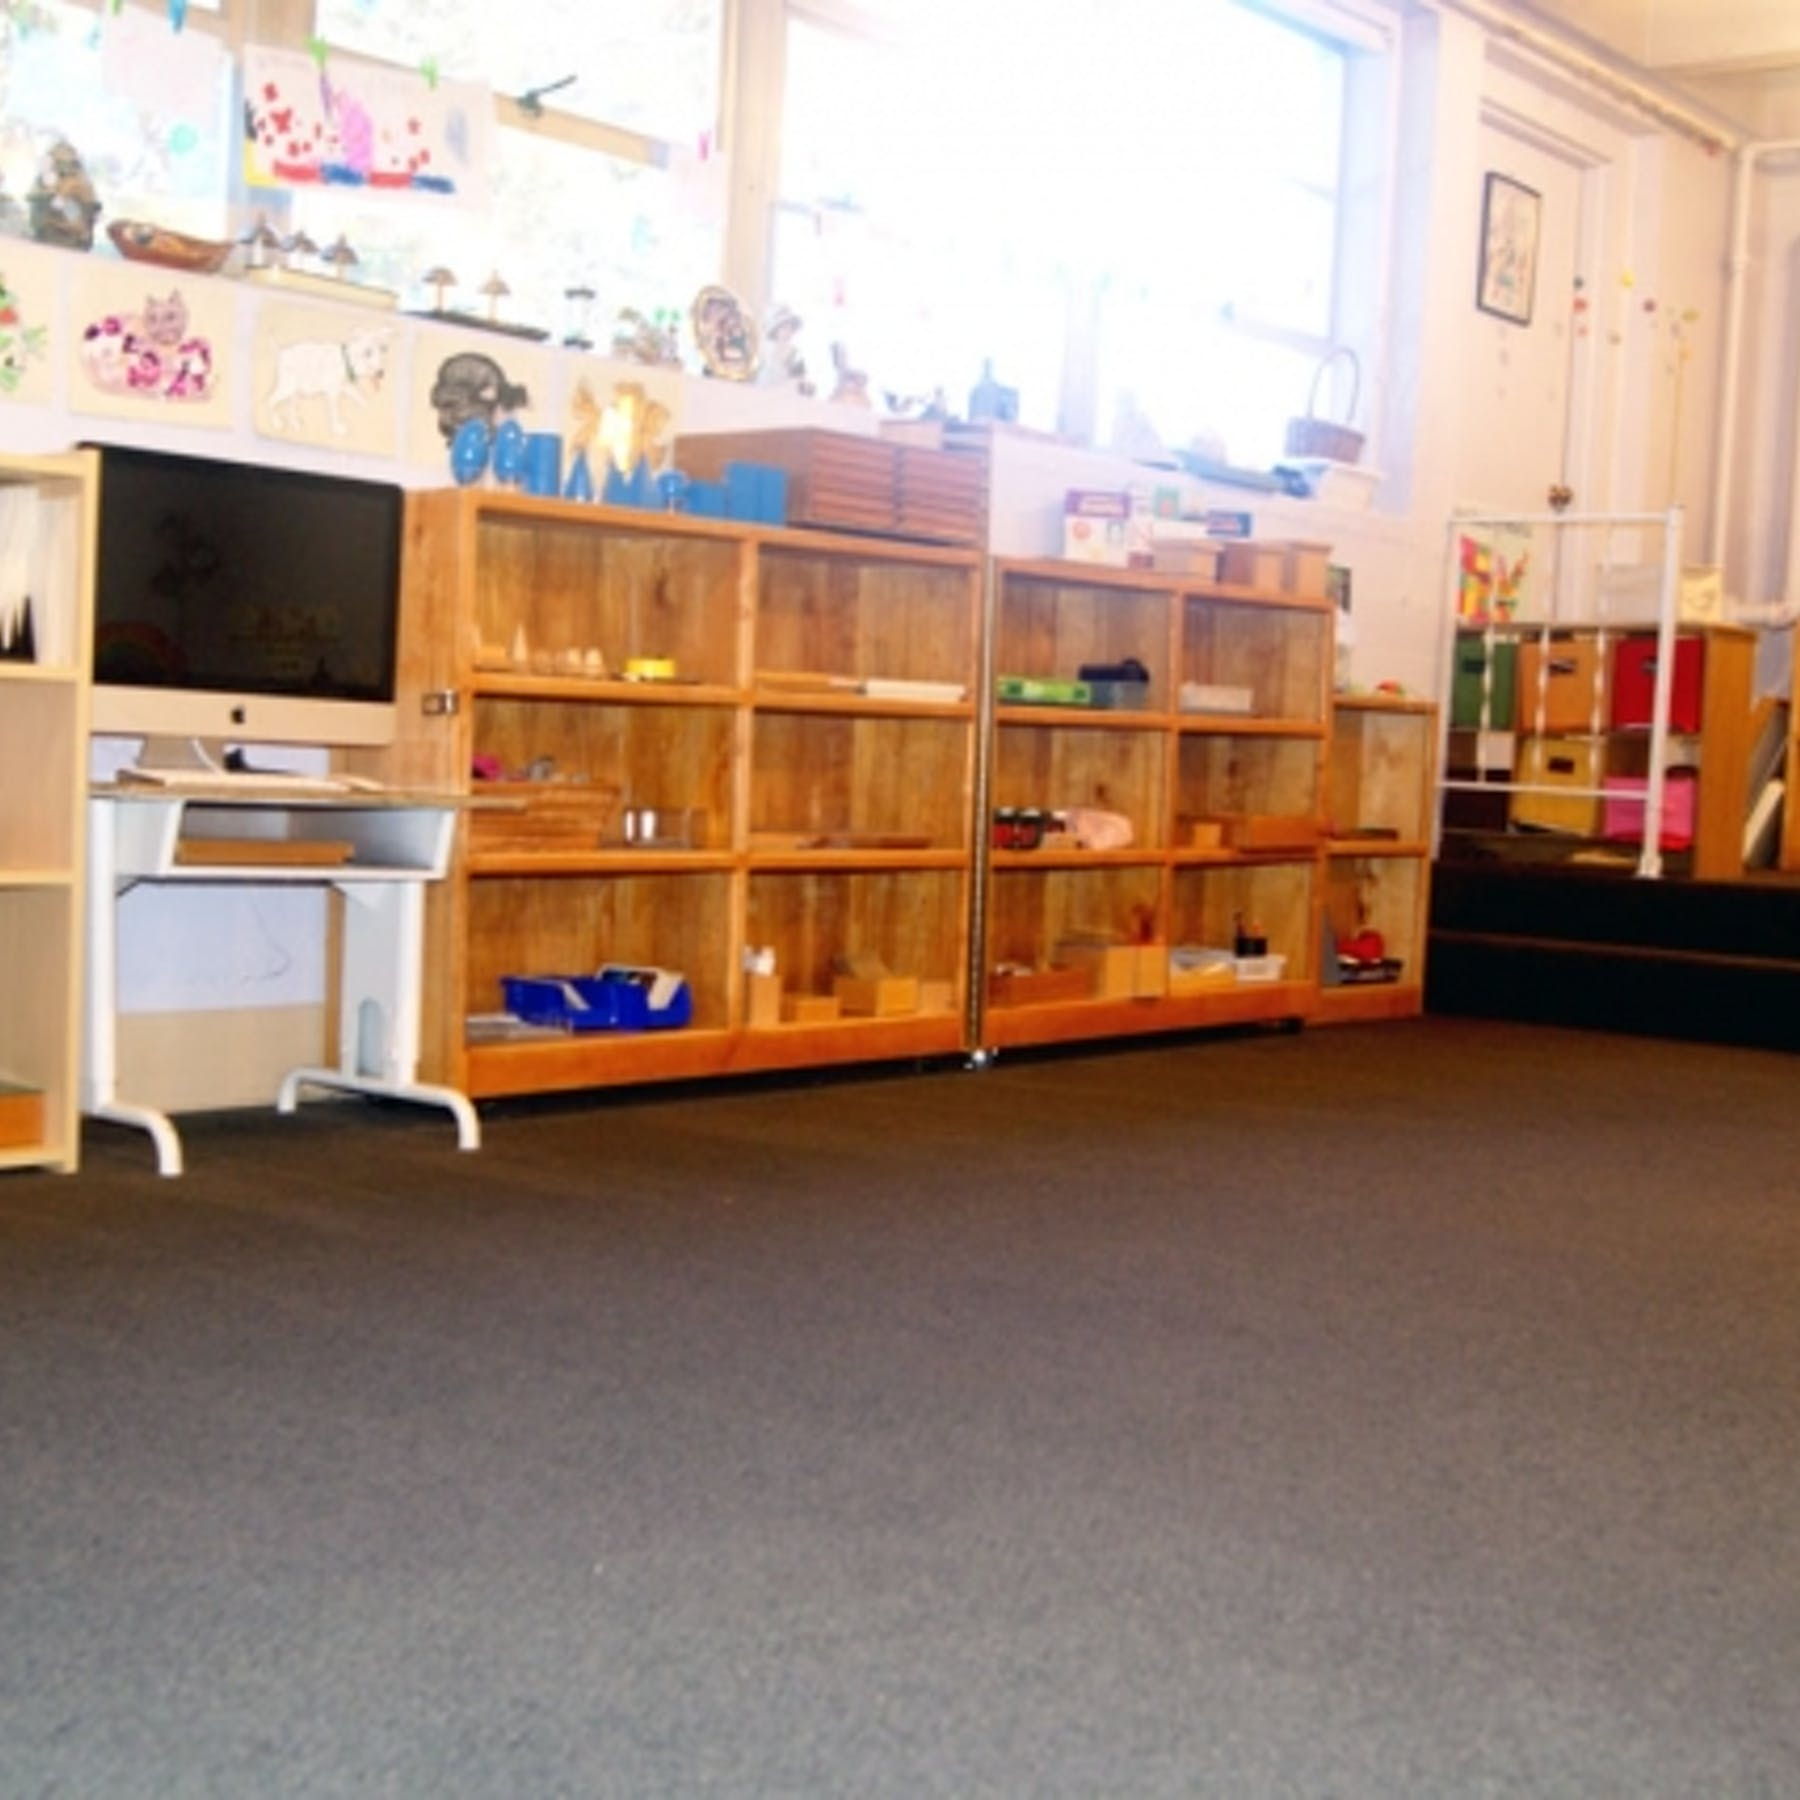 Morning Glory Montessori Preschool - Preschool in Burlingame